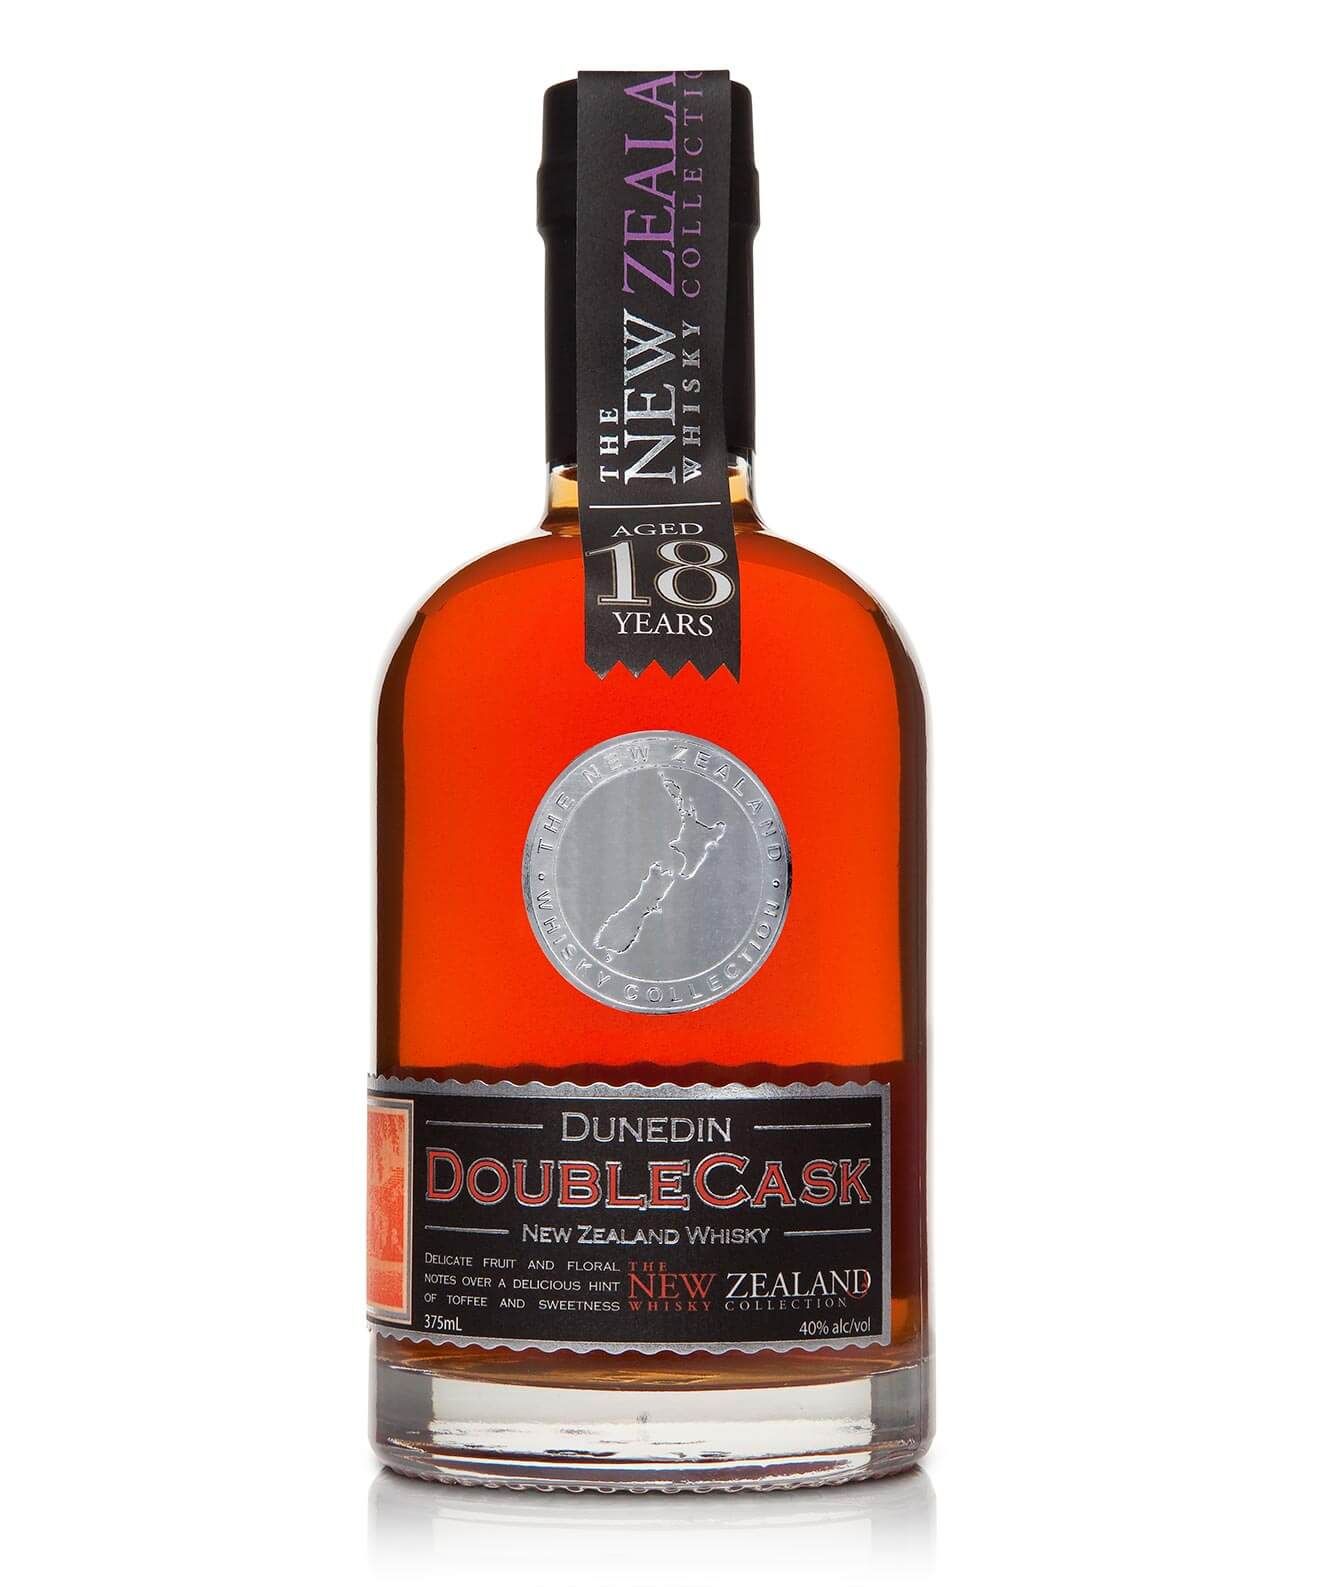 Dunedin DoubleCask 16 Year Old bottle